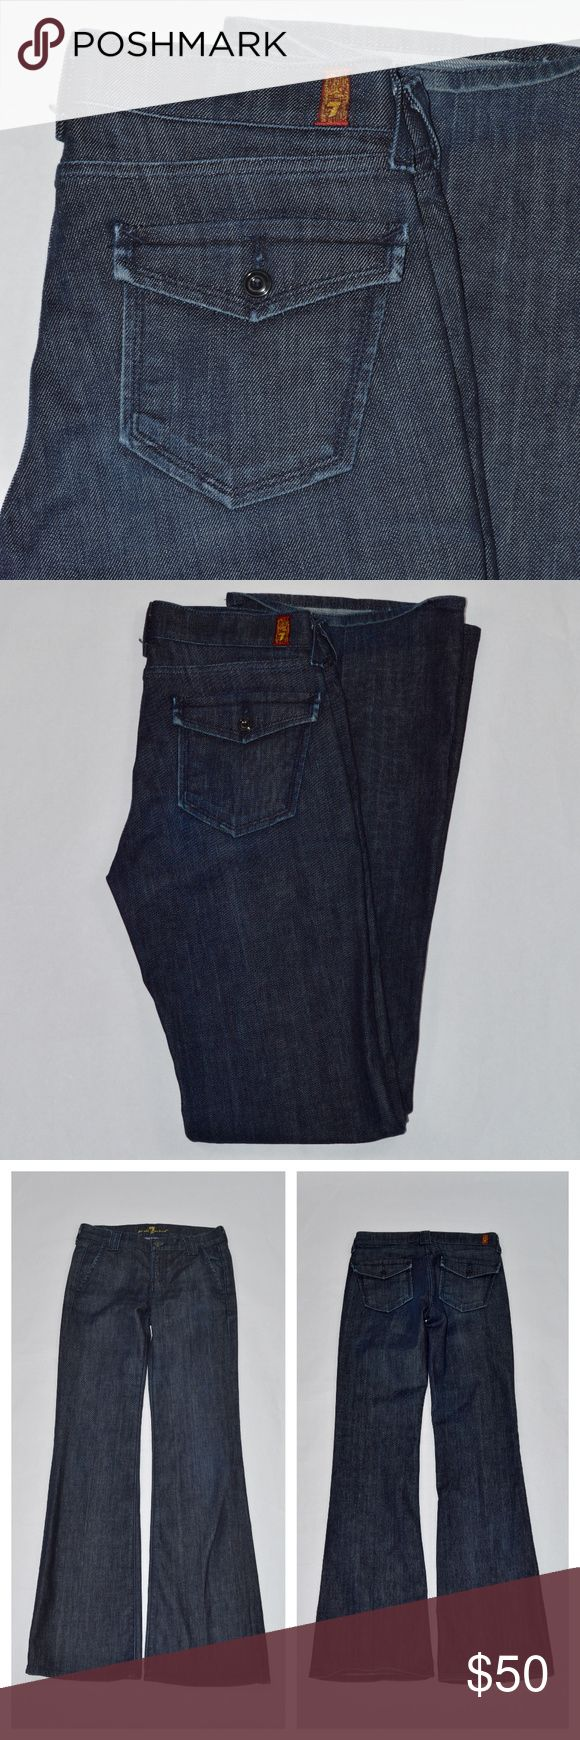 {74AMK} Dark-wash Lightweight Jeans w Flap Pocket Great pair of jeans from 7 for All Mankind. It features a dark wash with a button flap on the pocket. Size: 27. No fraying on the hems.  *170926_04_0533gc 7 For All Mankind Jeans Boot Cut